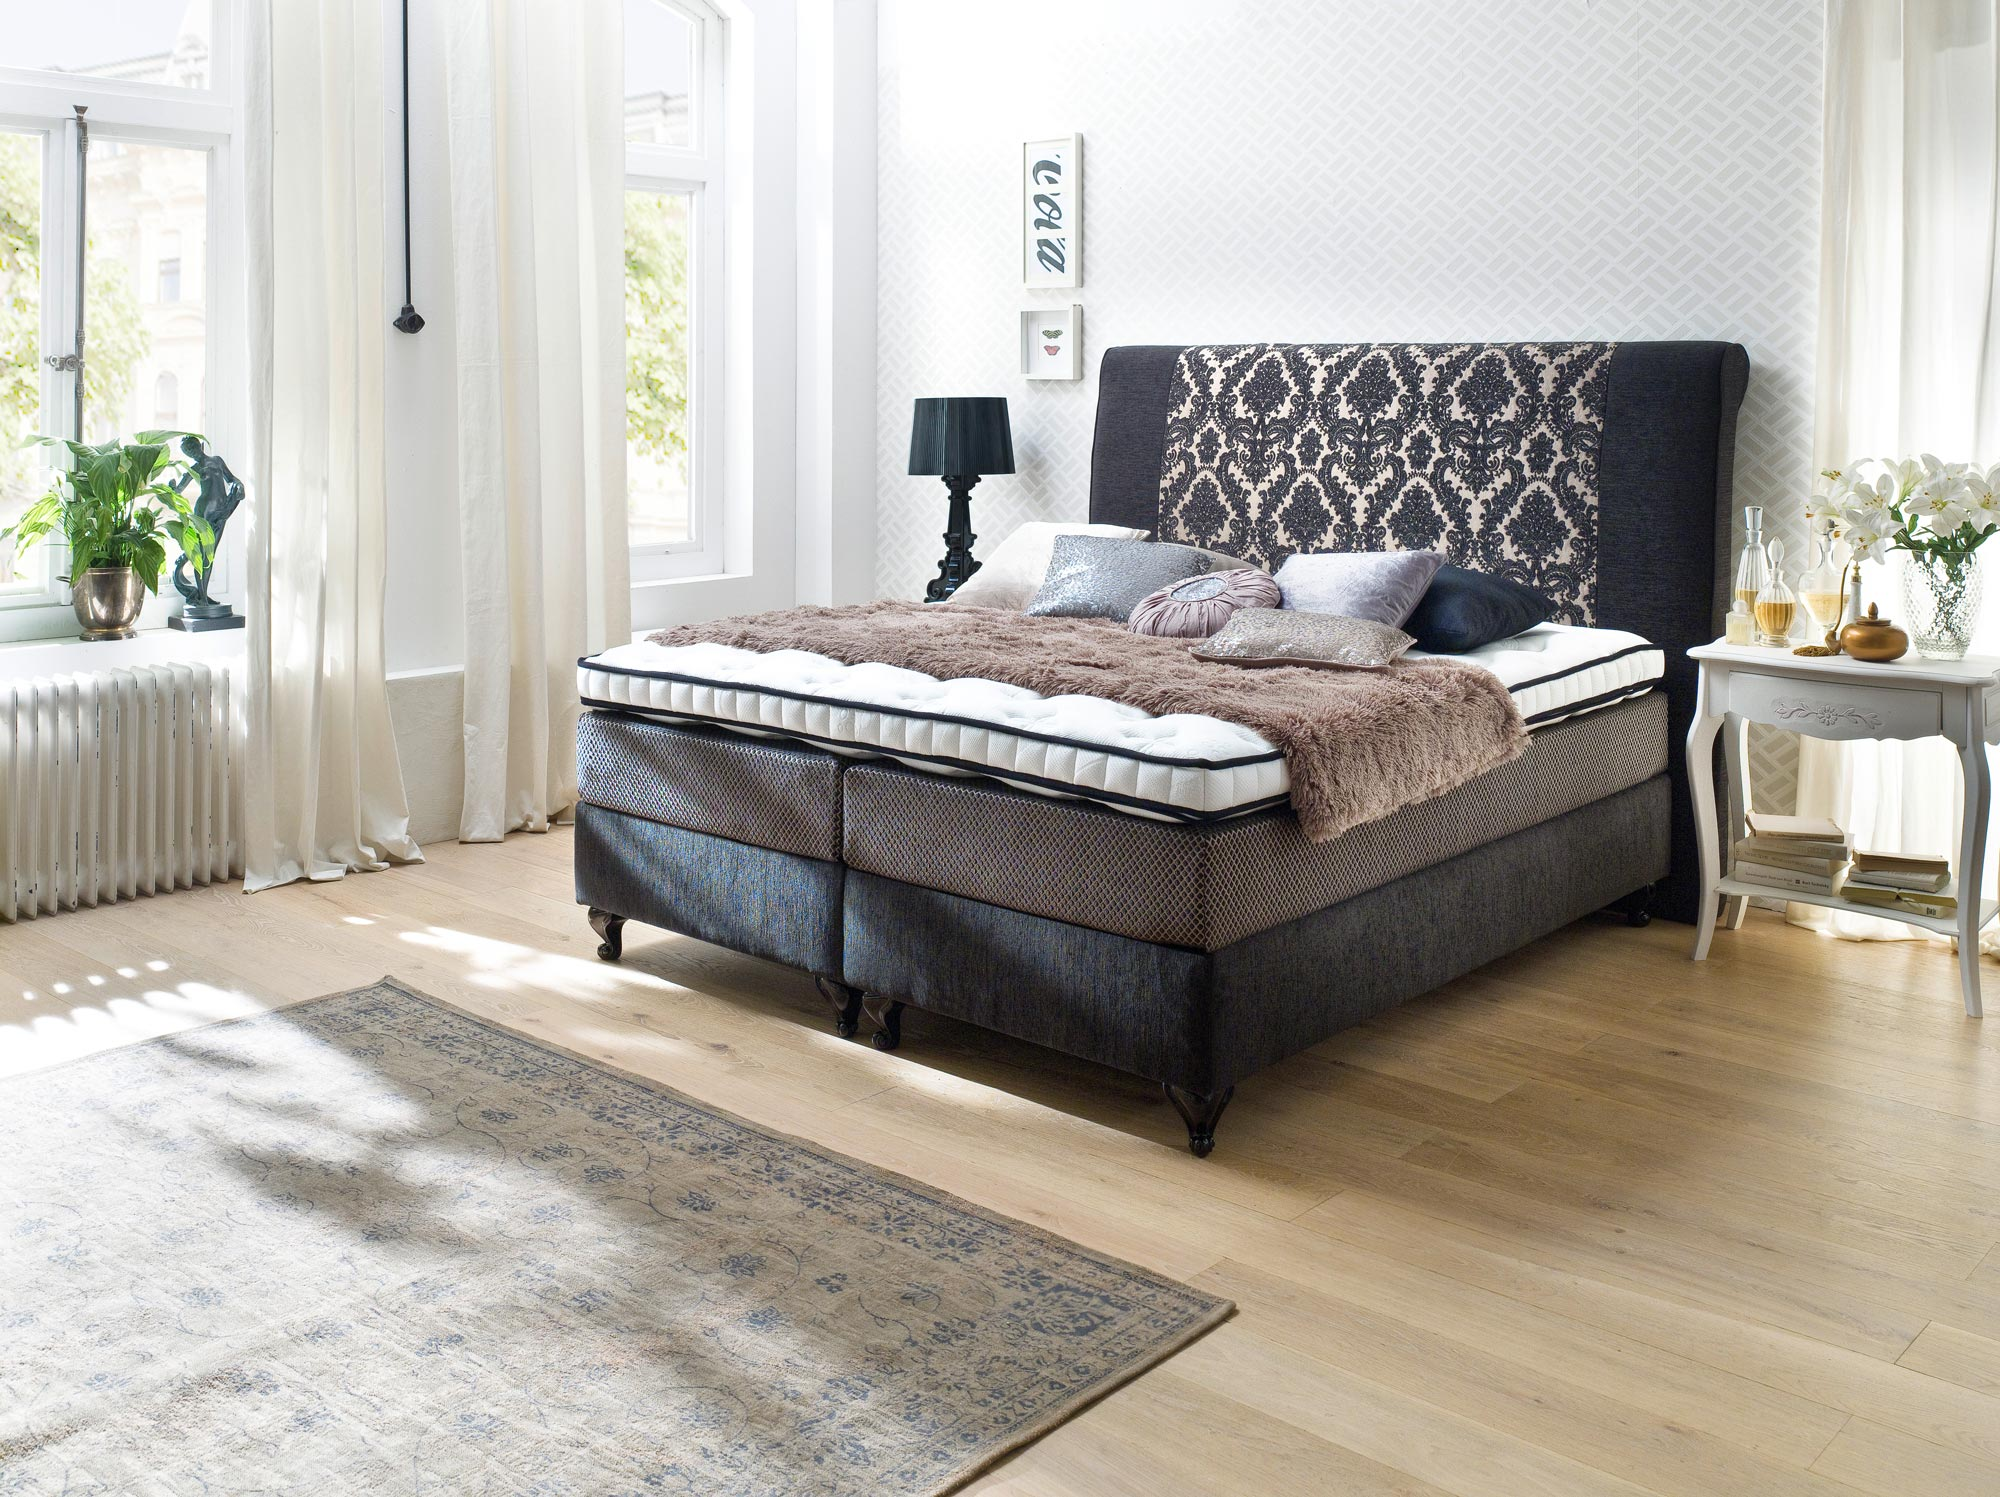 boxspringbett belfast 180x200 cm in gold schwarz mit. Black Bedroom Furniture Sets. Home Design Ideas